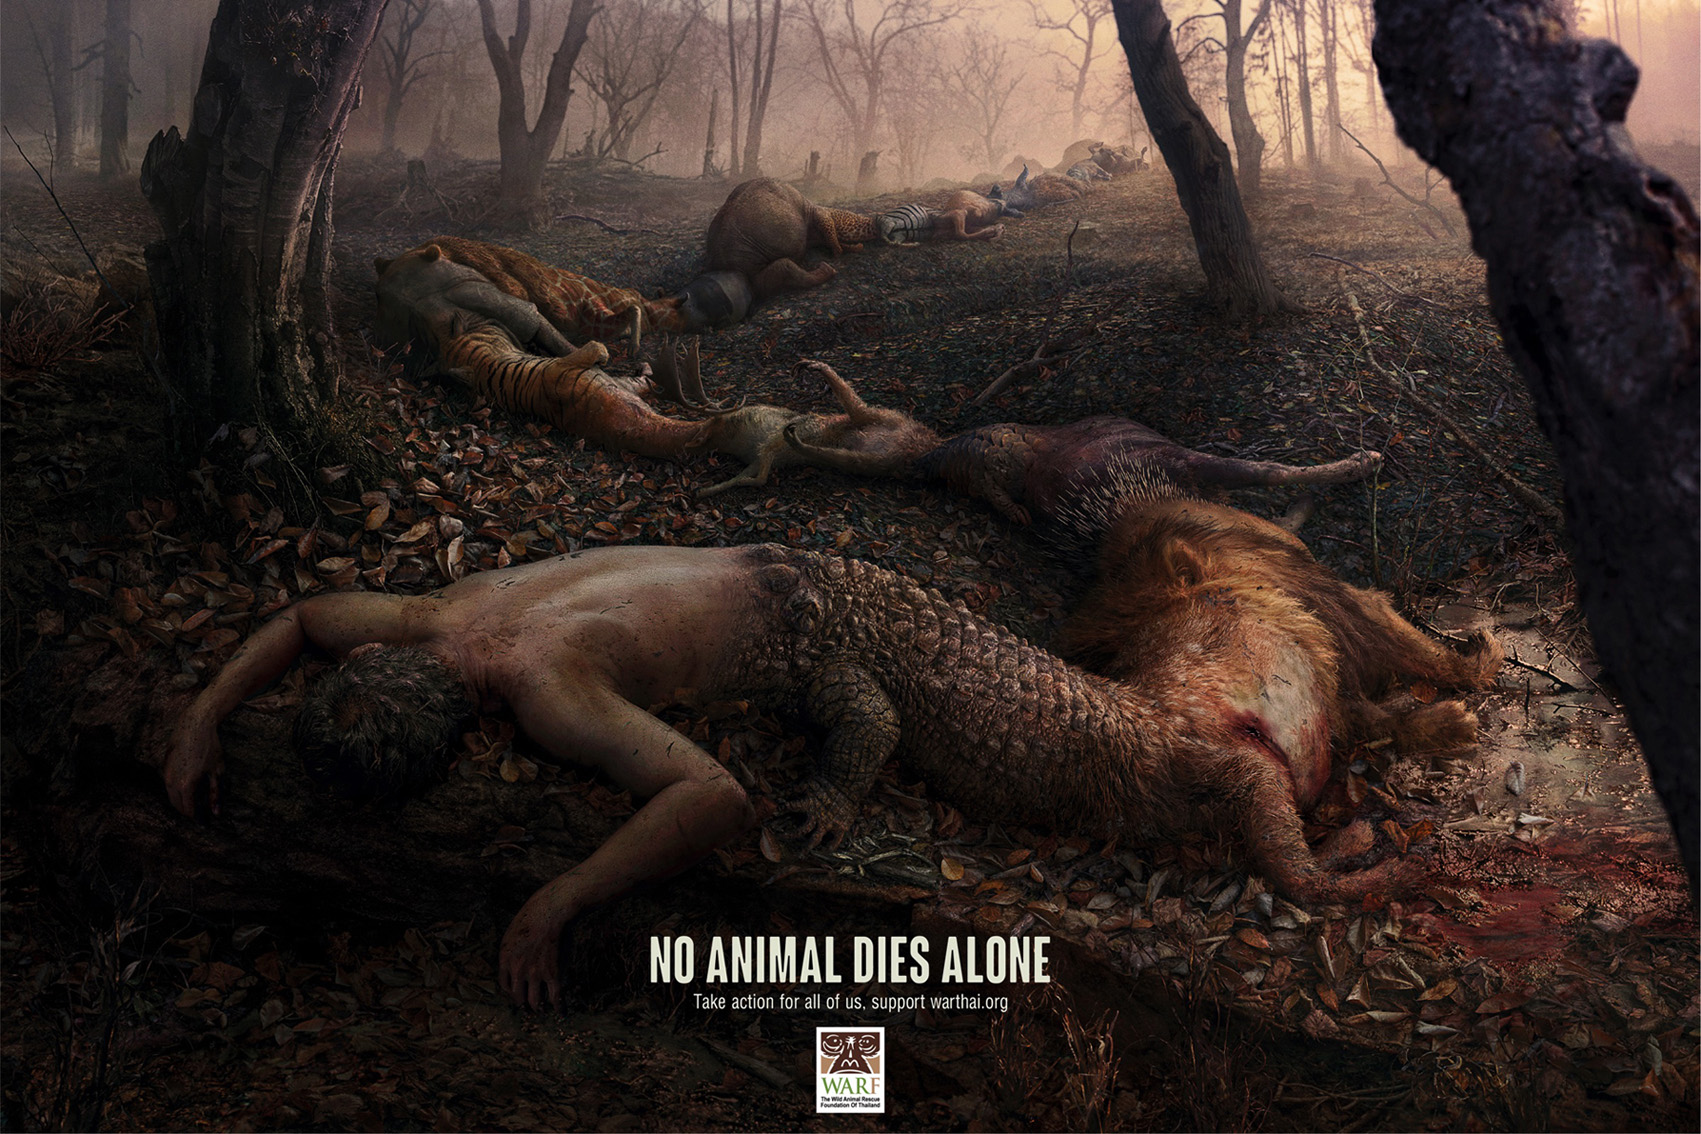 Seen+Noted: No animal dies alone